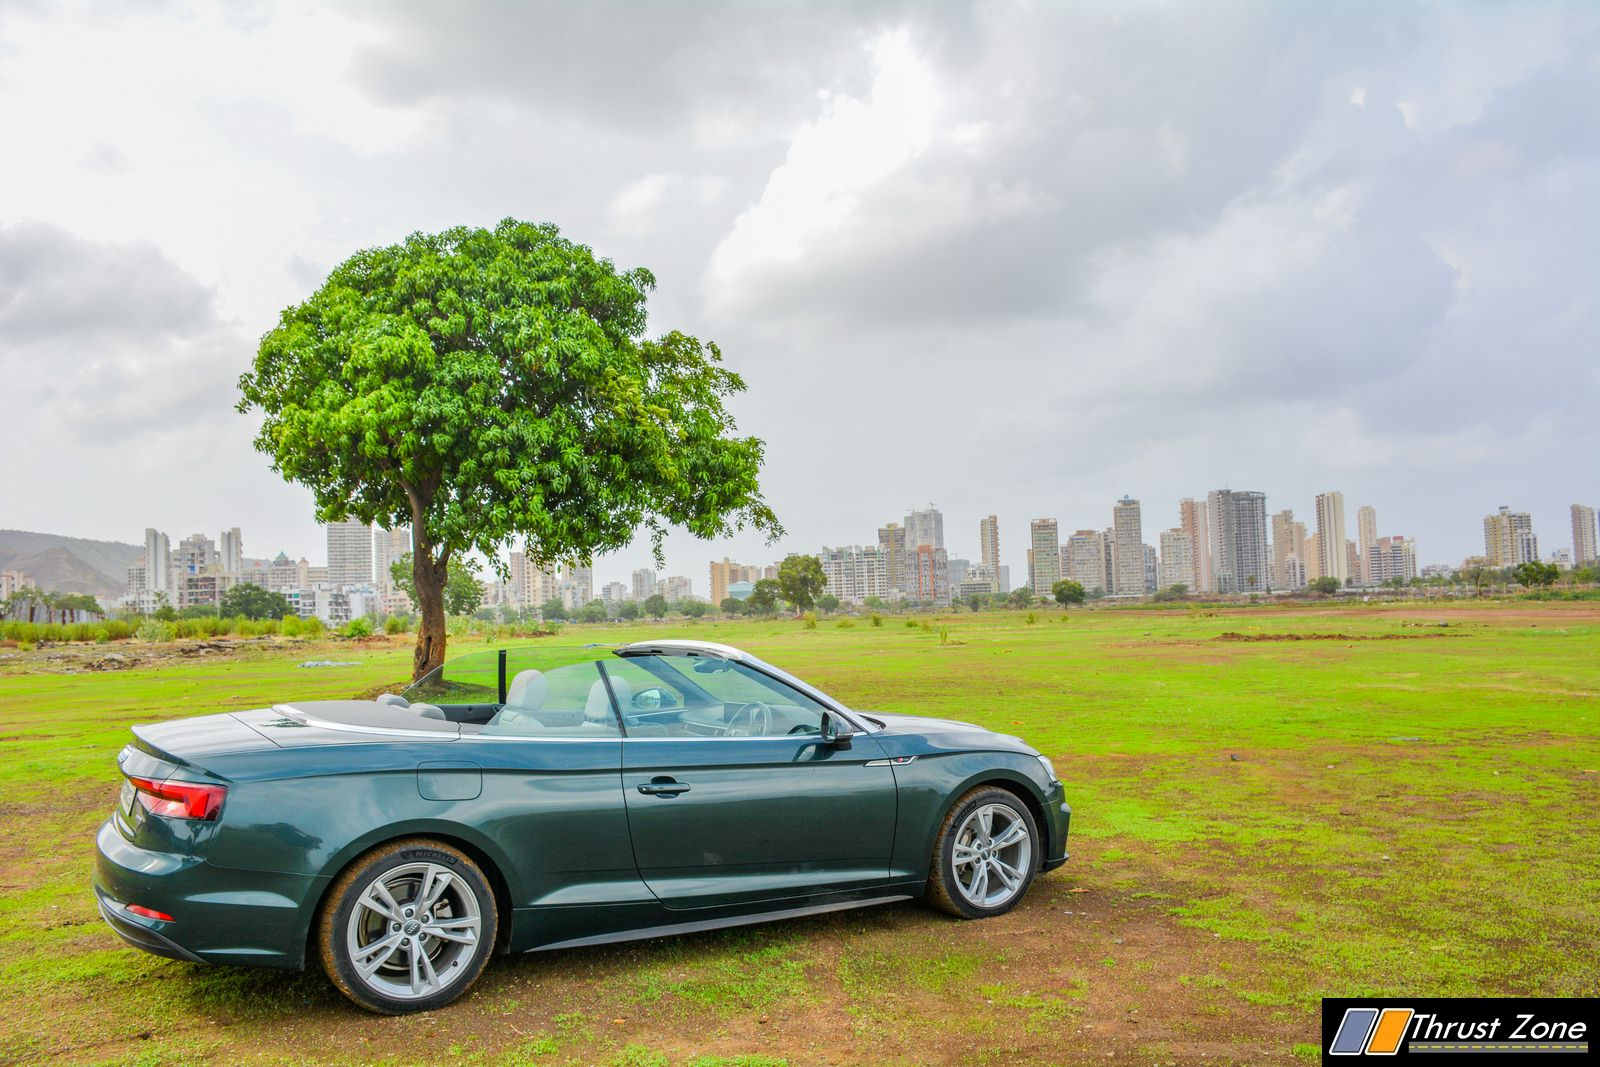 https://www.thrustzone.com/wp-content/uploads/2019/06/2019-Audi-A5-Cabriolet-Convertible-India-Diesel-Review-15.jpg